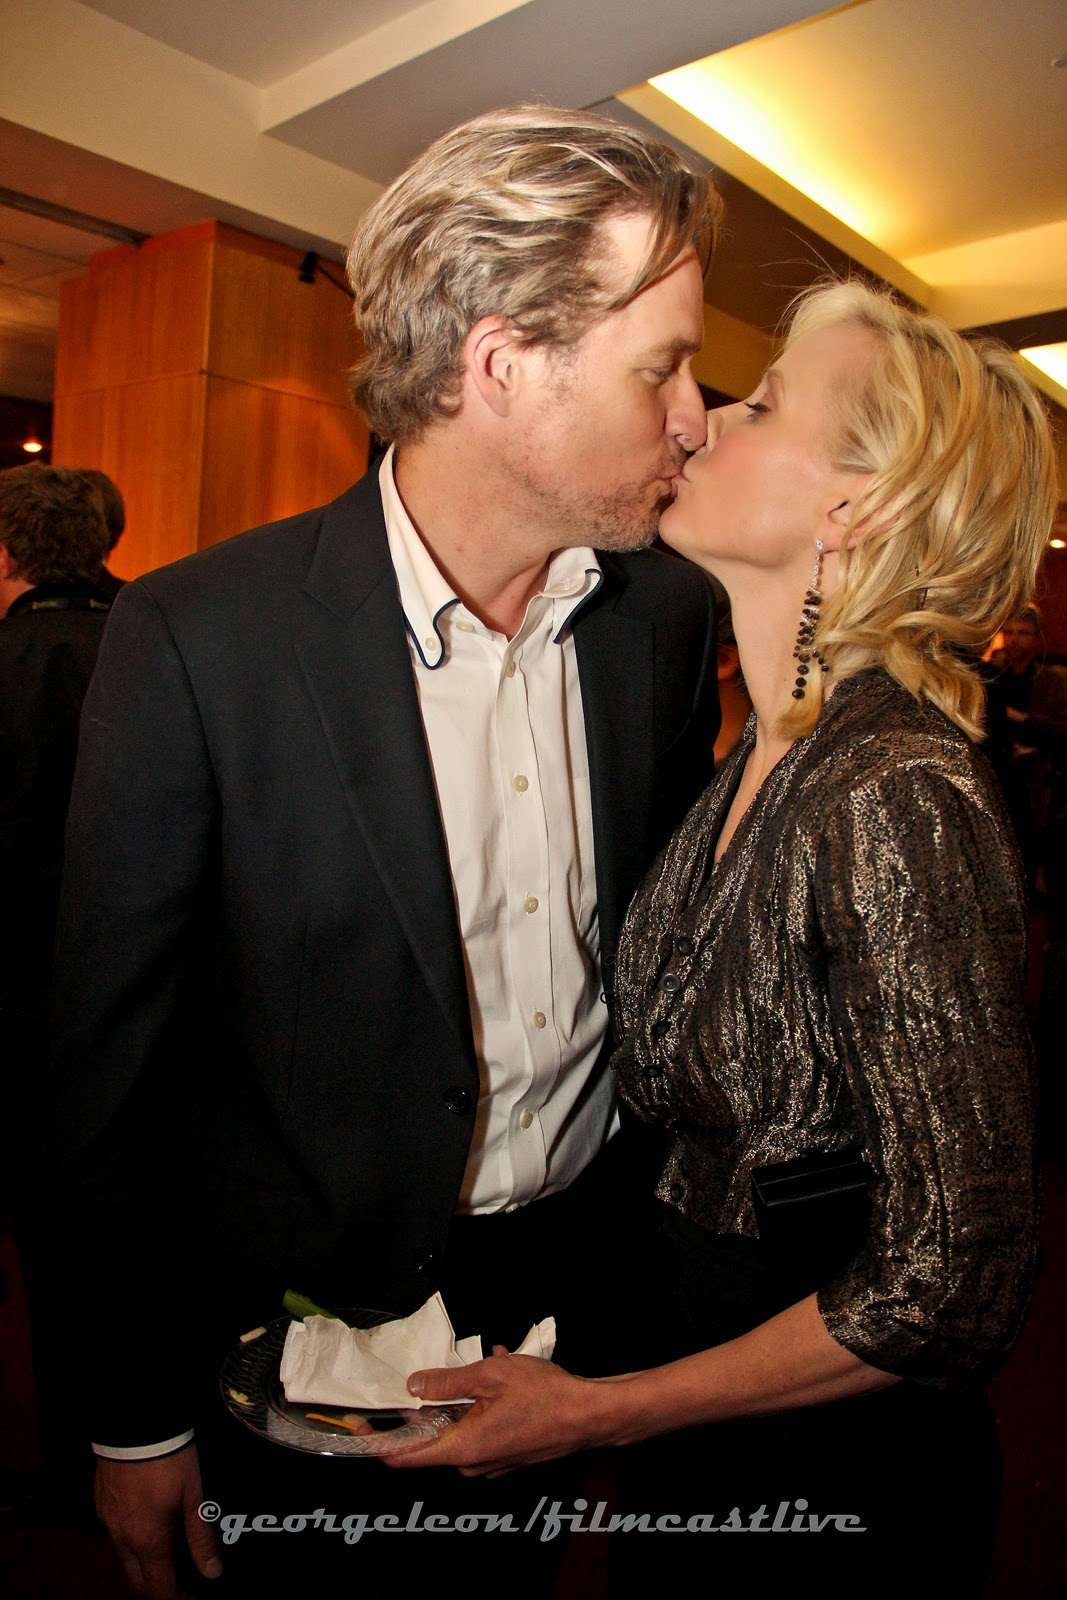 James Tucker, Anne Heche  Kiss © george leon / filmcastlive